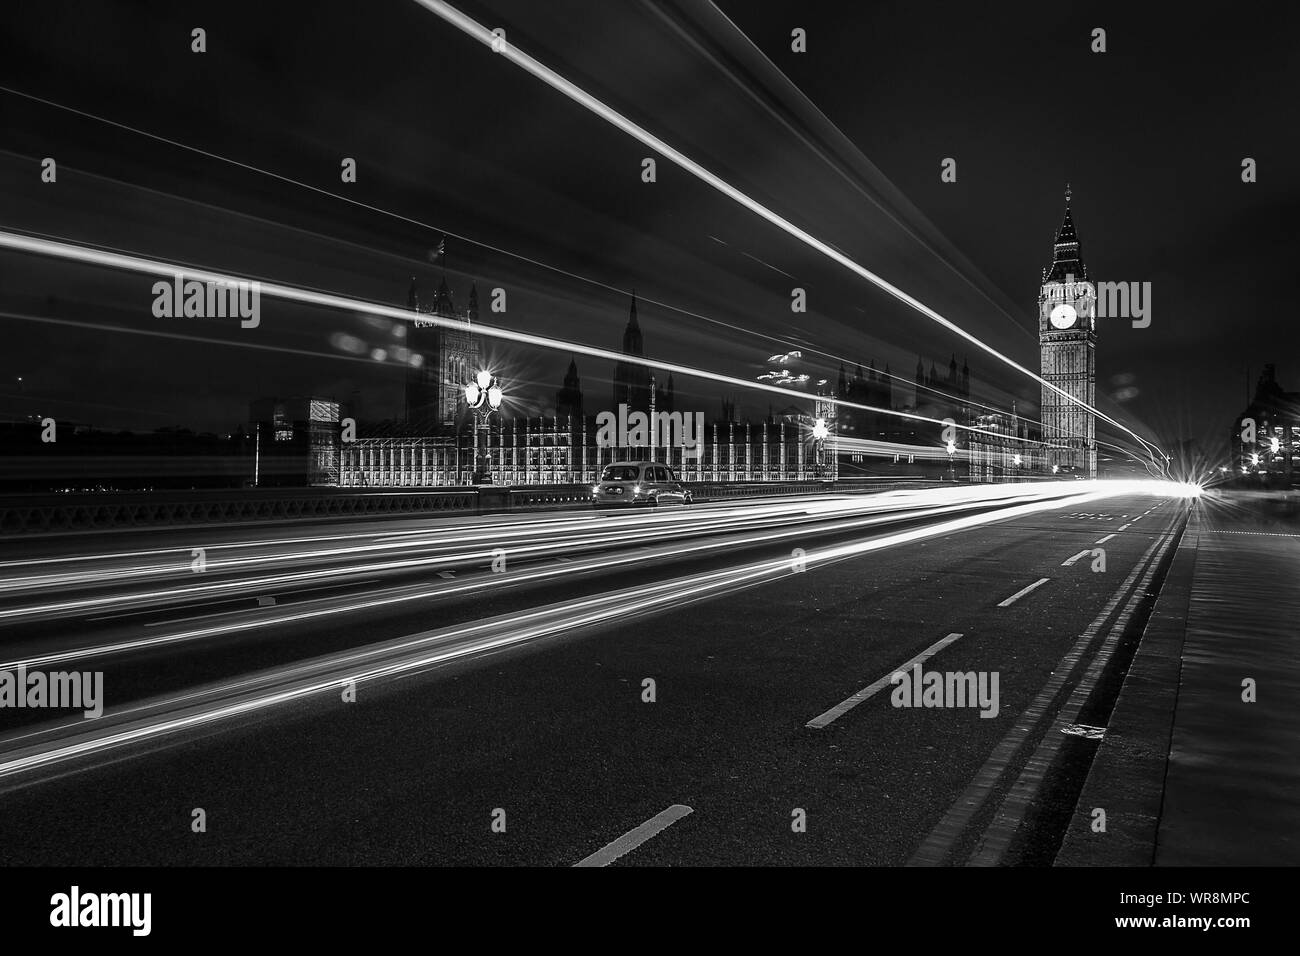 Light Trails On Westminster Bridge Against Illuminated Big Ben At Night Stock Photo